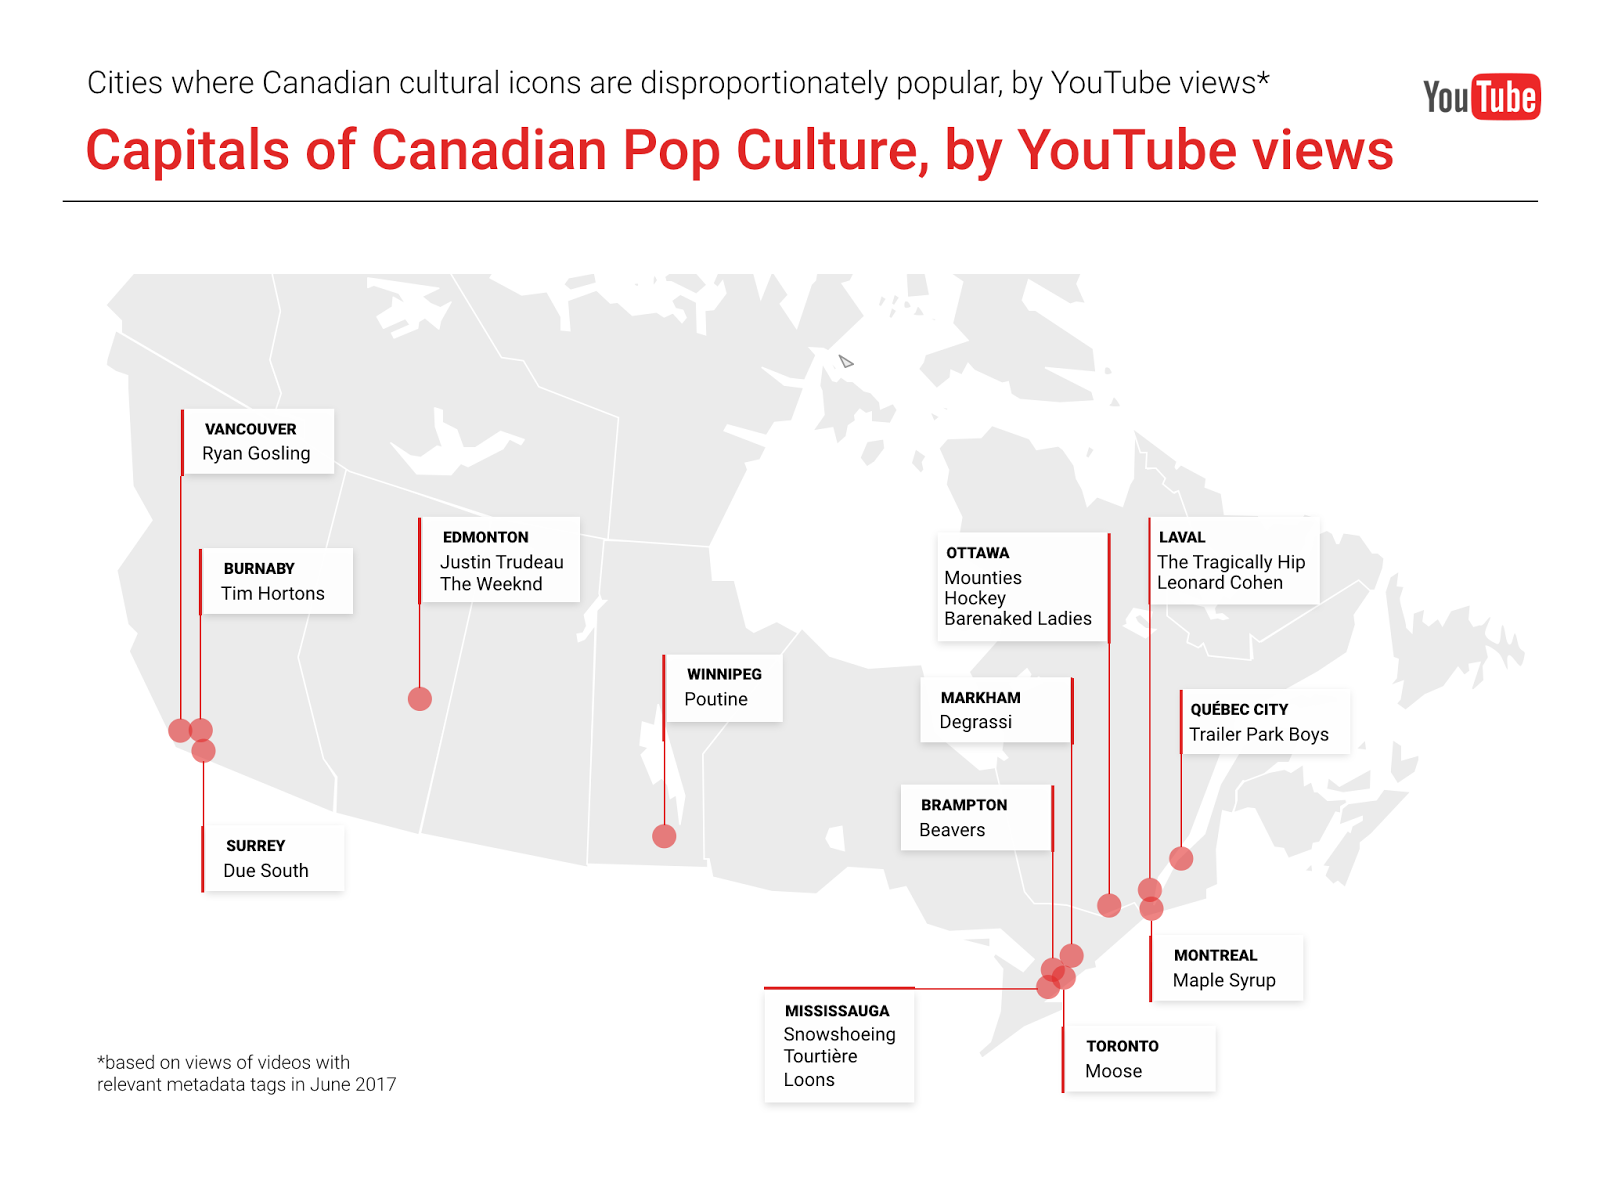 Canadian Pop Culture Capitals According To Youtube Utter Buzz Whole Lotta Humbucker Wiring Diagram Does Ottawa Dominate When It Comes Watching Videos About Snowshoeing Which City Is Most Interested In Poutine Weve Crunched The Numbers For